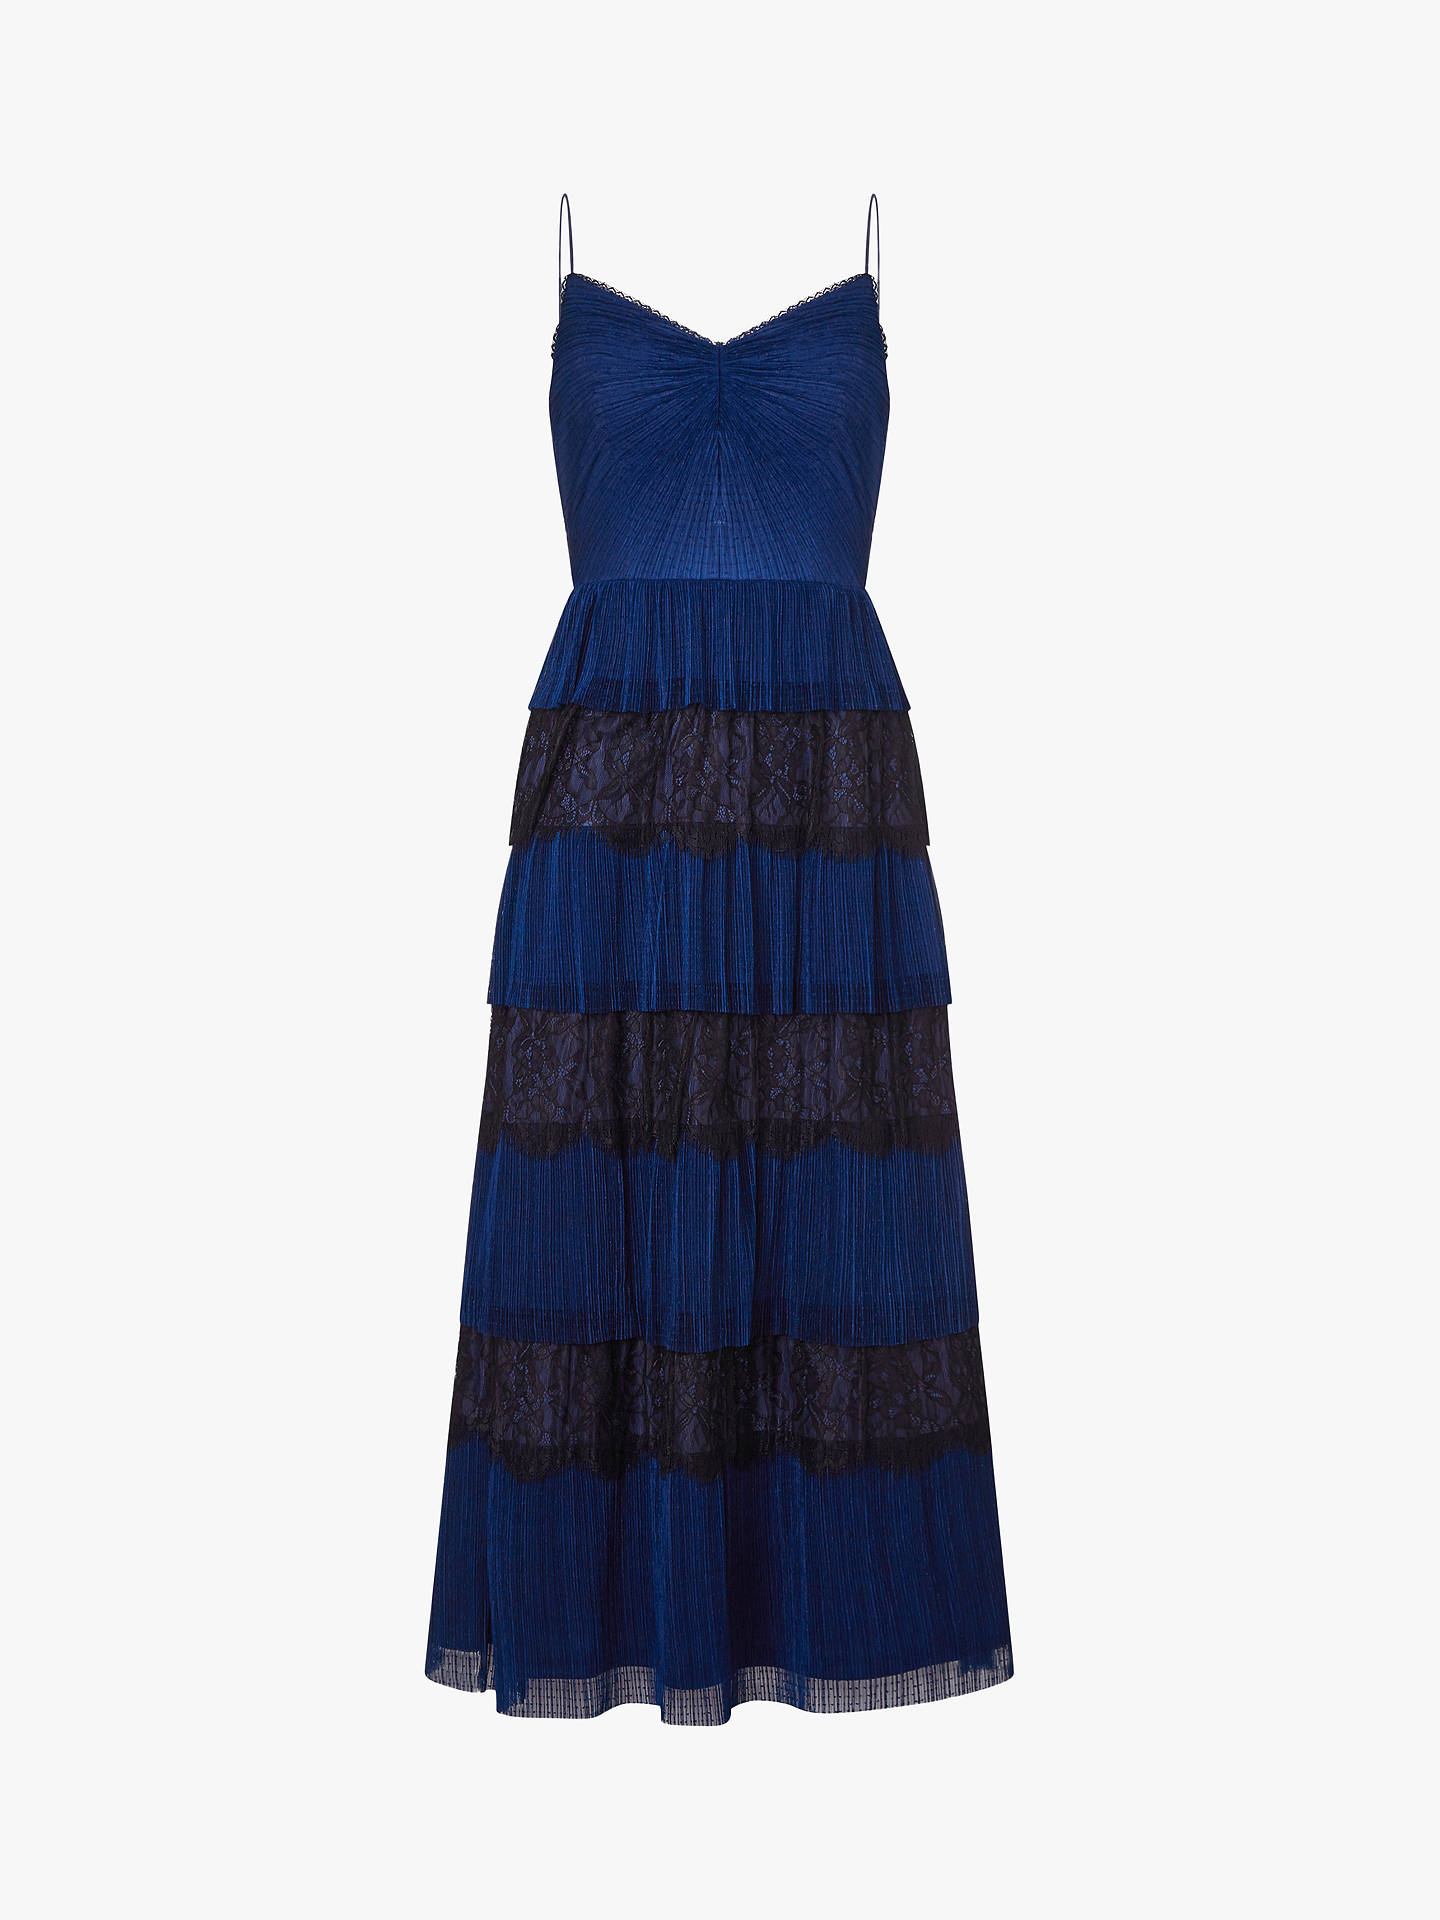 Buy Adrianna Papell Crinkle Lace Tiered Dress, Midnight Blue, 6 Online at johnlewis.com